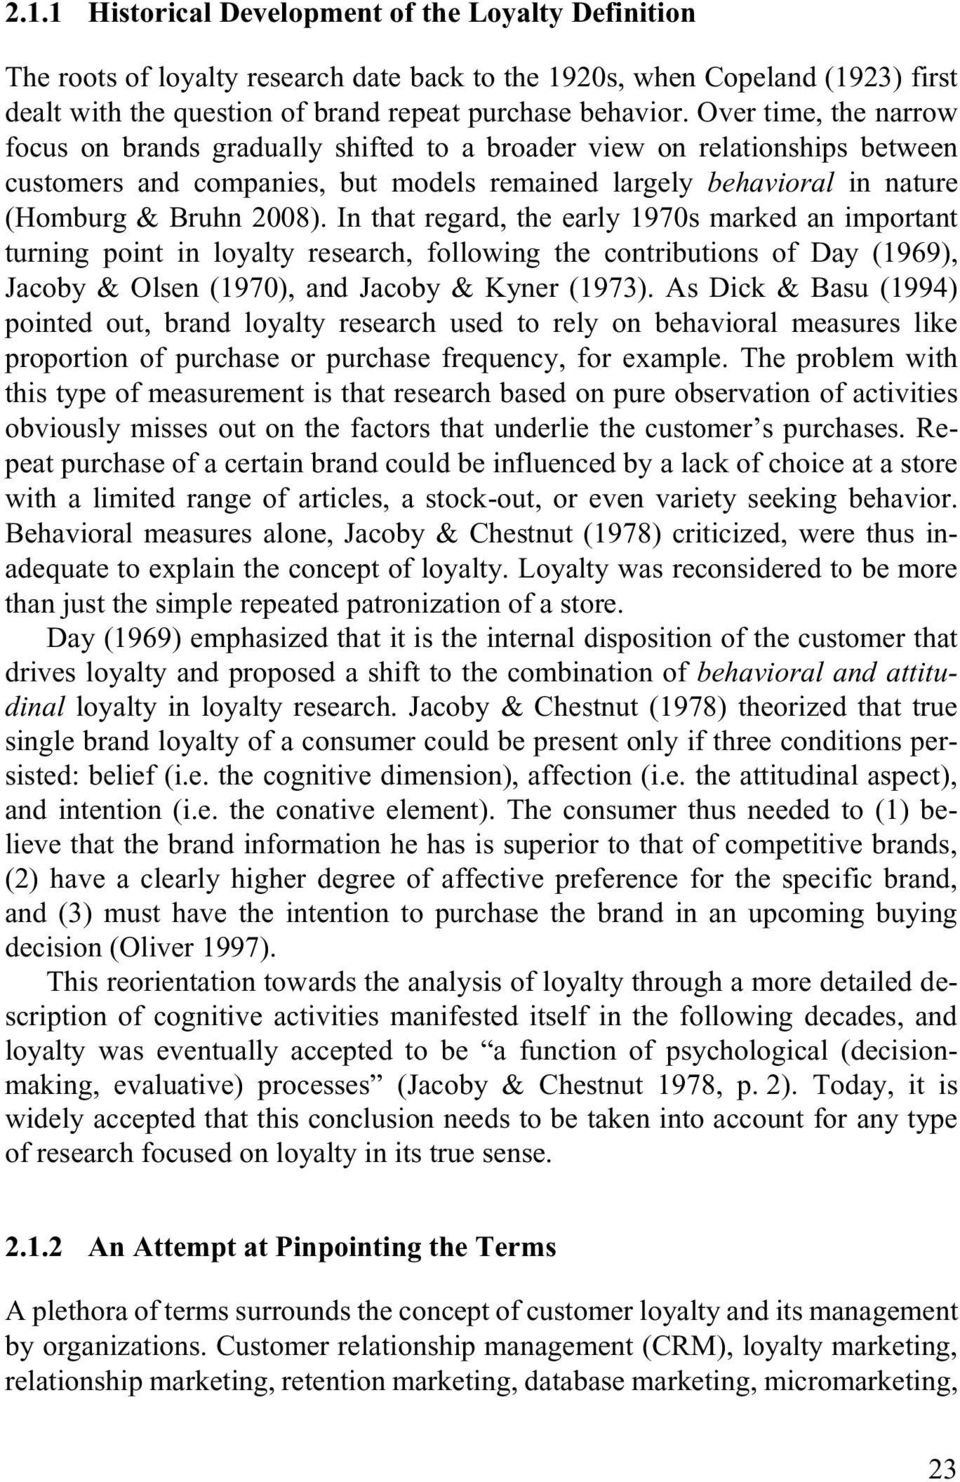 In that regard, the early 1970s marked an important turning point in loyalty research, following the contributions of Day (1969), Jacoby & Olsen (1970), and Jacoby & Kyner (1973).